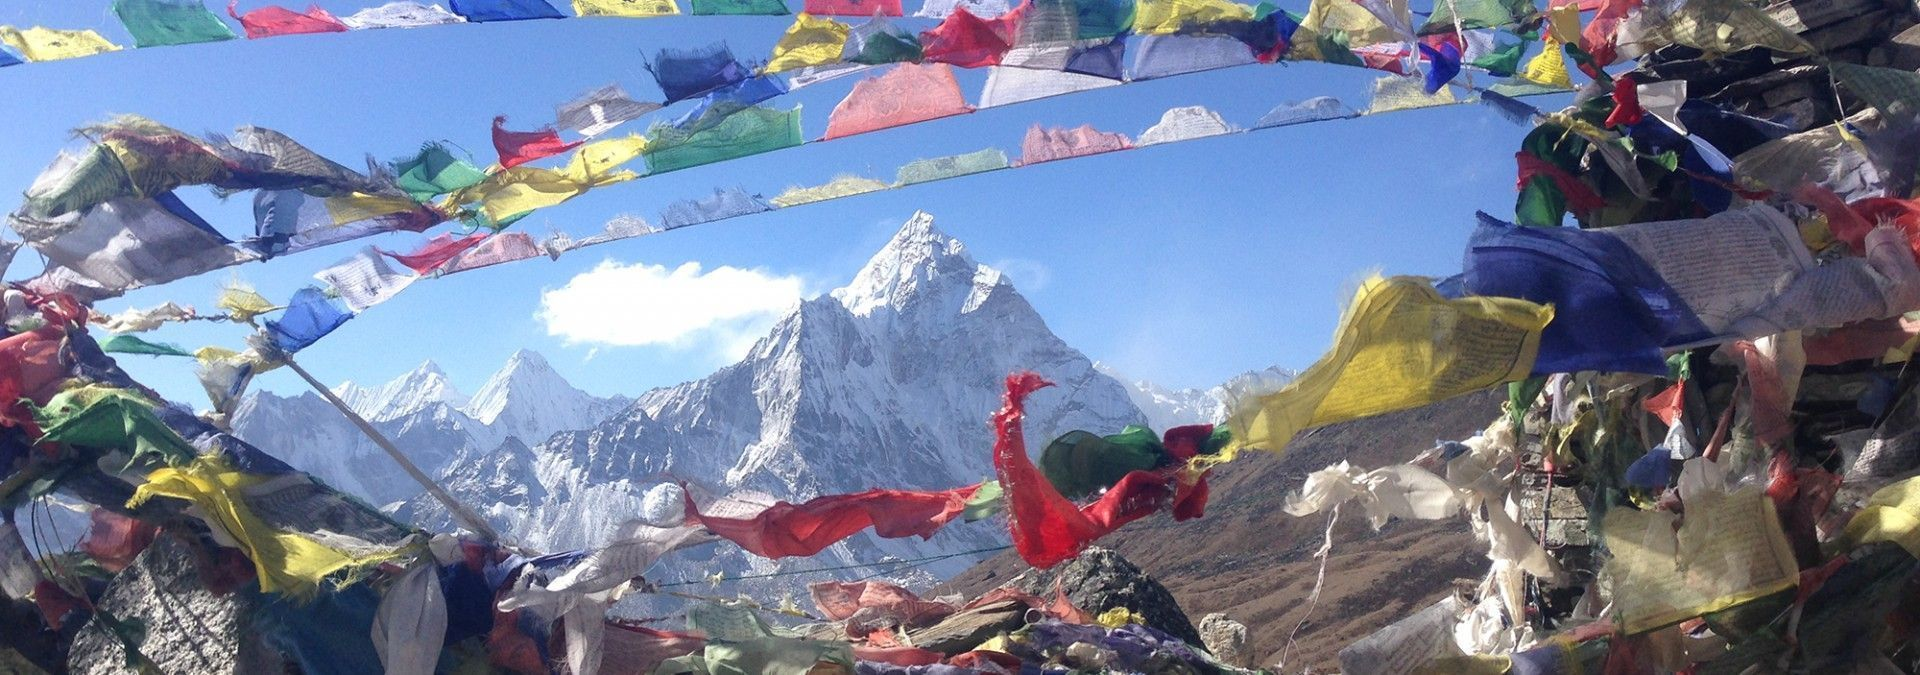 View_of_Everest_through_Prayer_flags.jpg